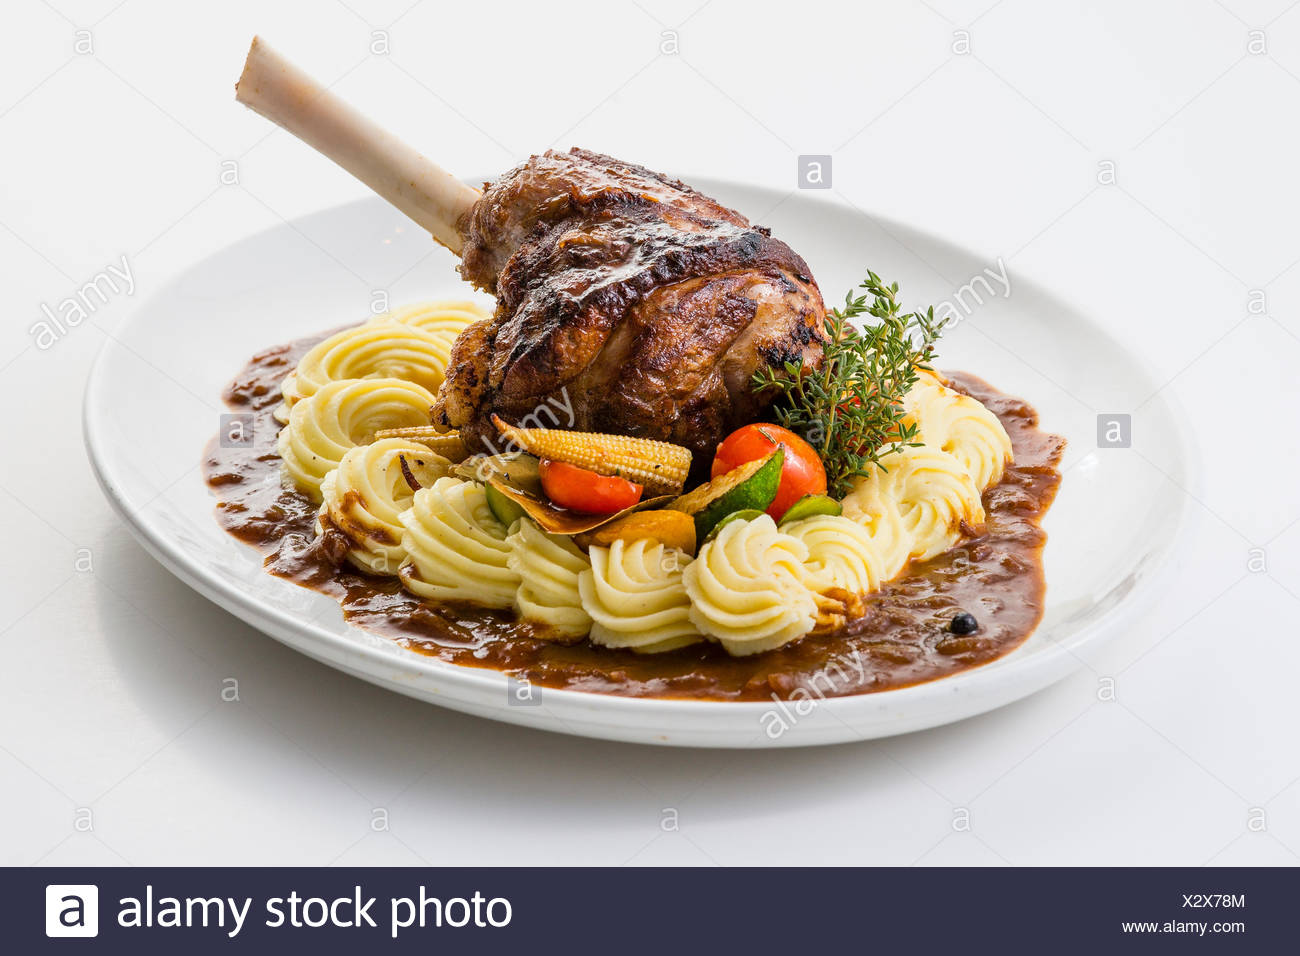 Roasted lamb shank on mashed potatoes - Stock Image